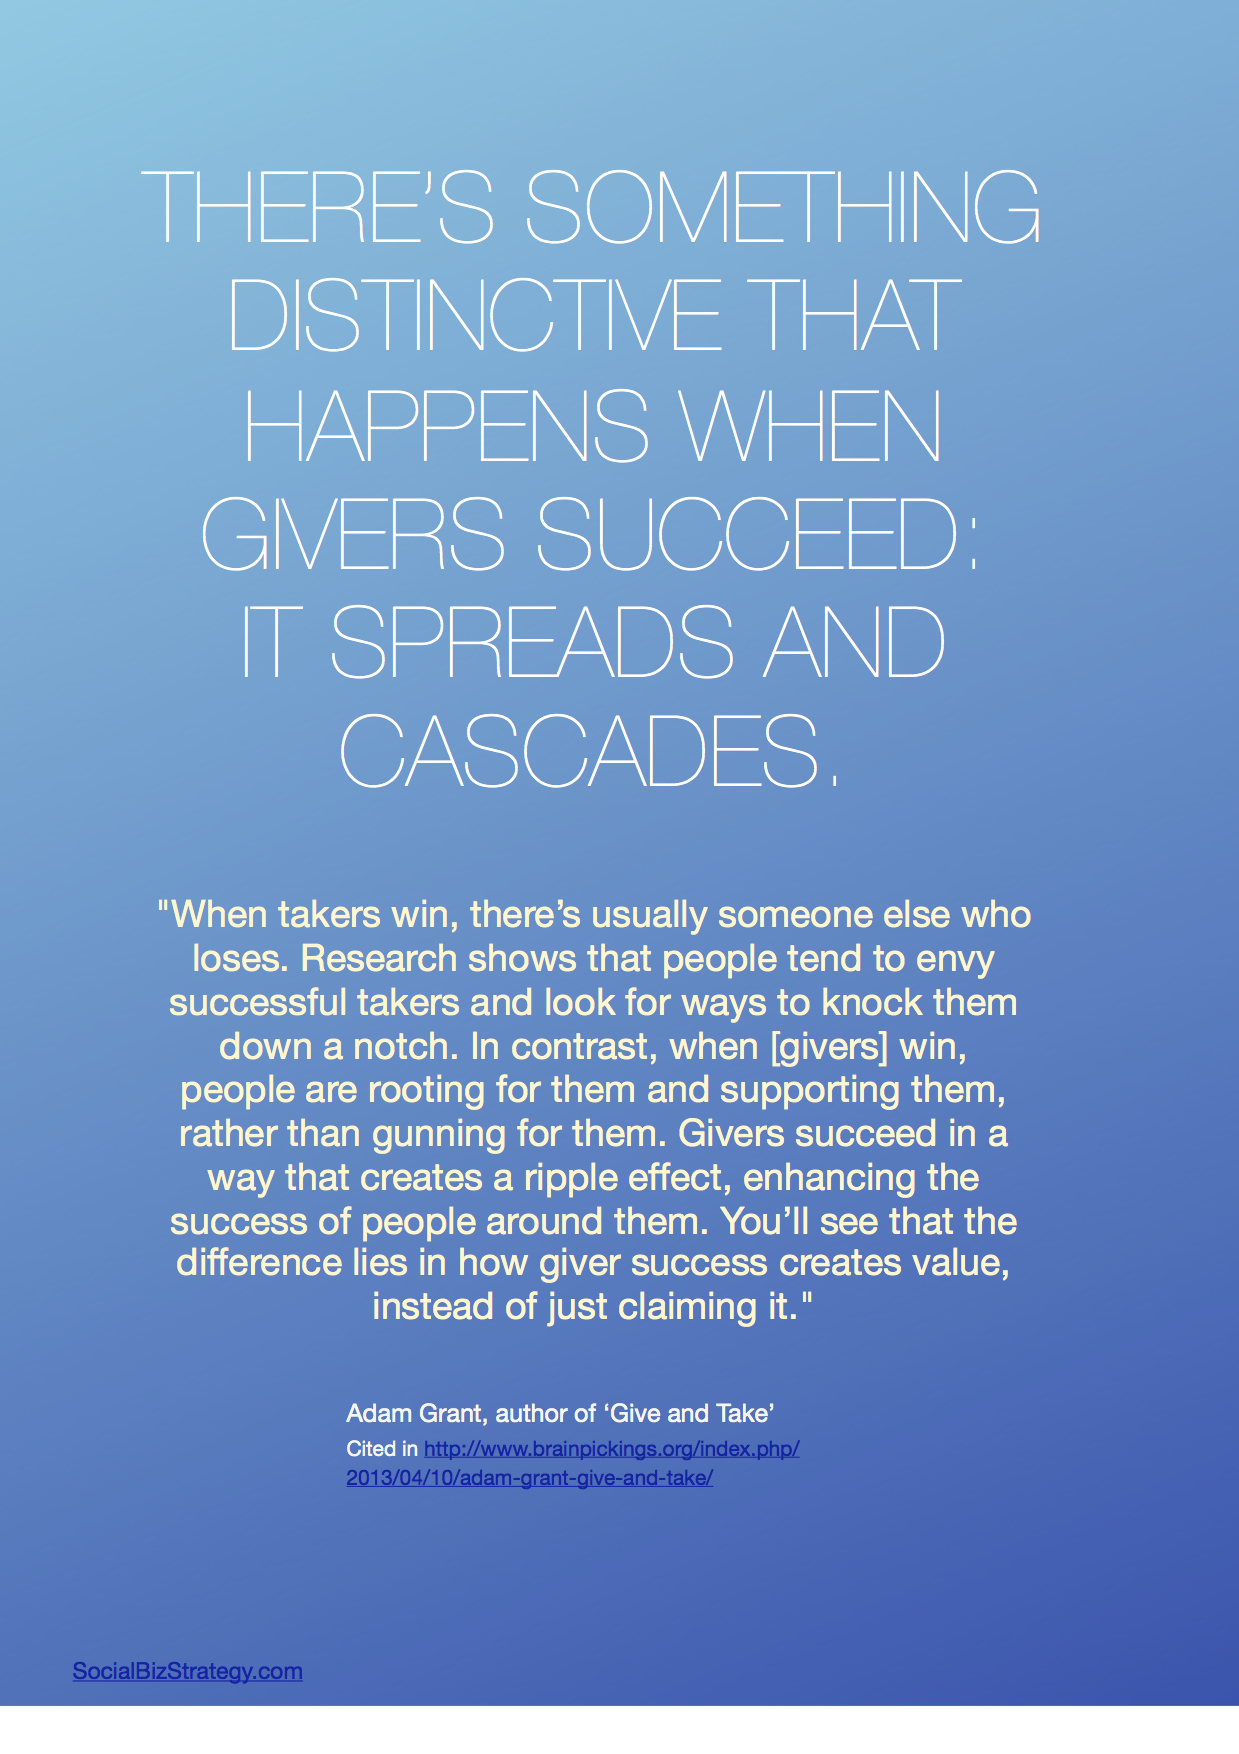 When givers succeed, success spreads and cascades.